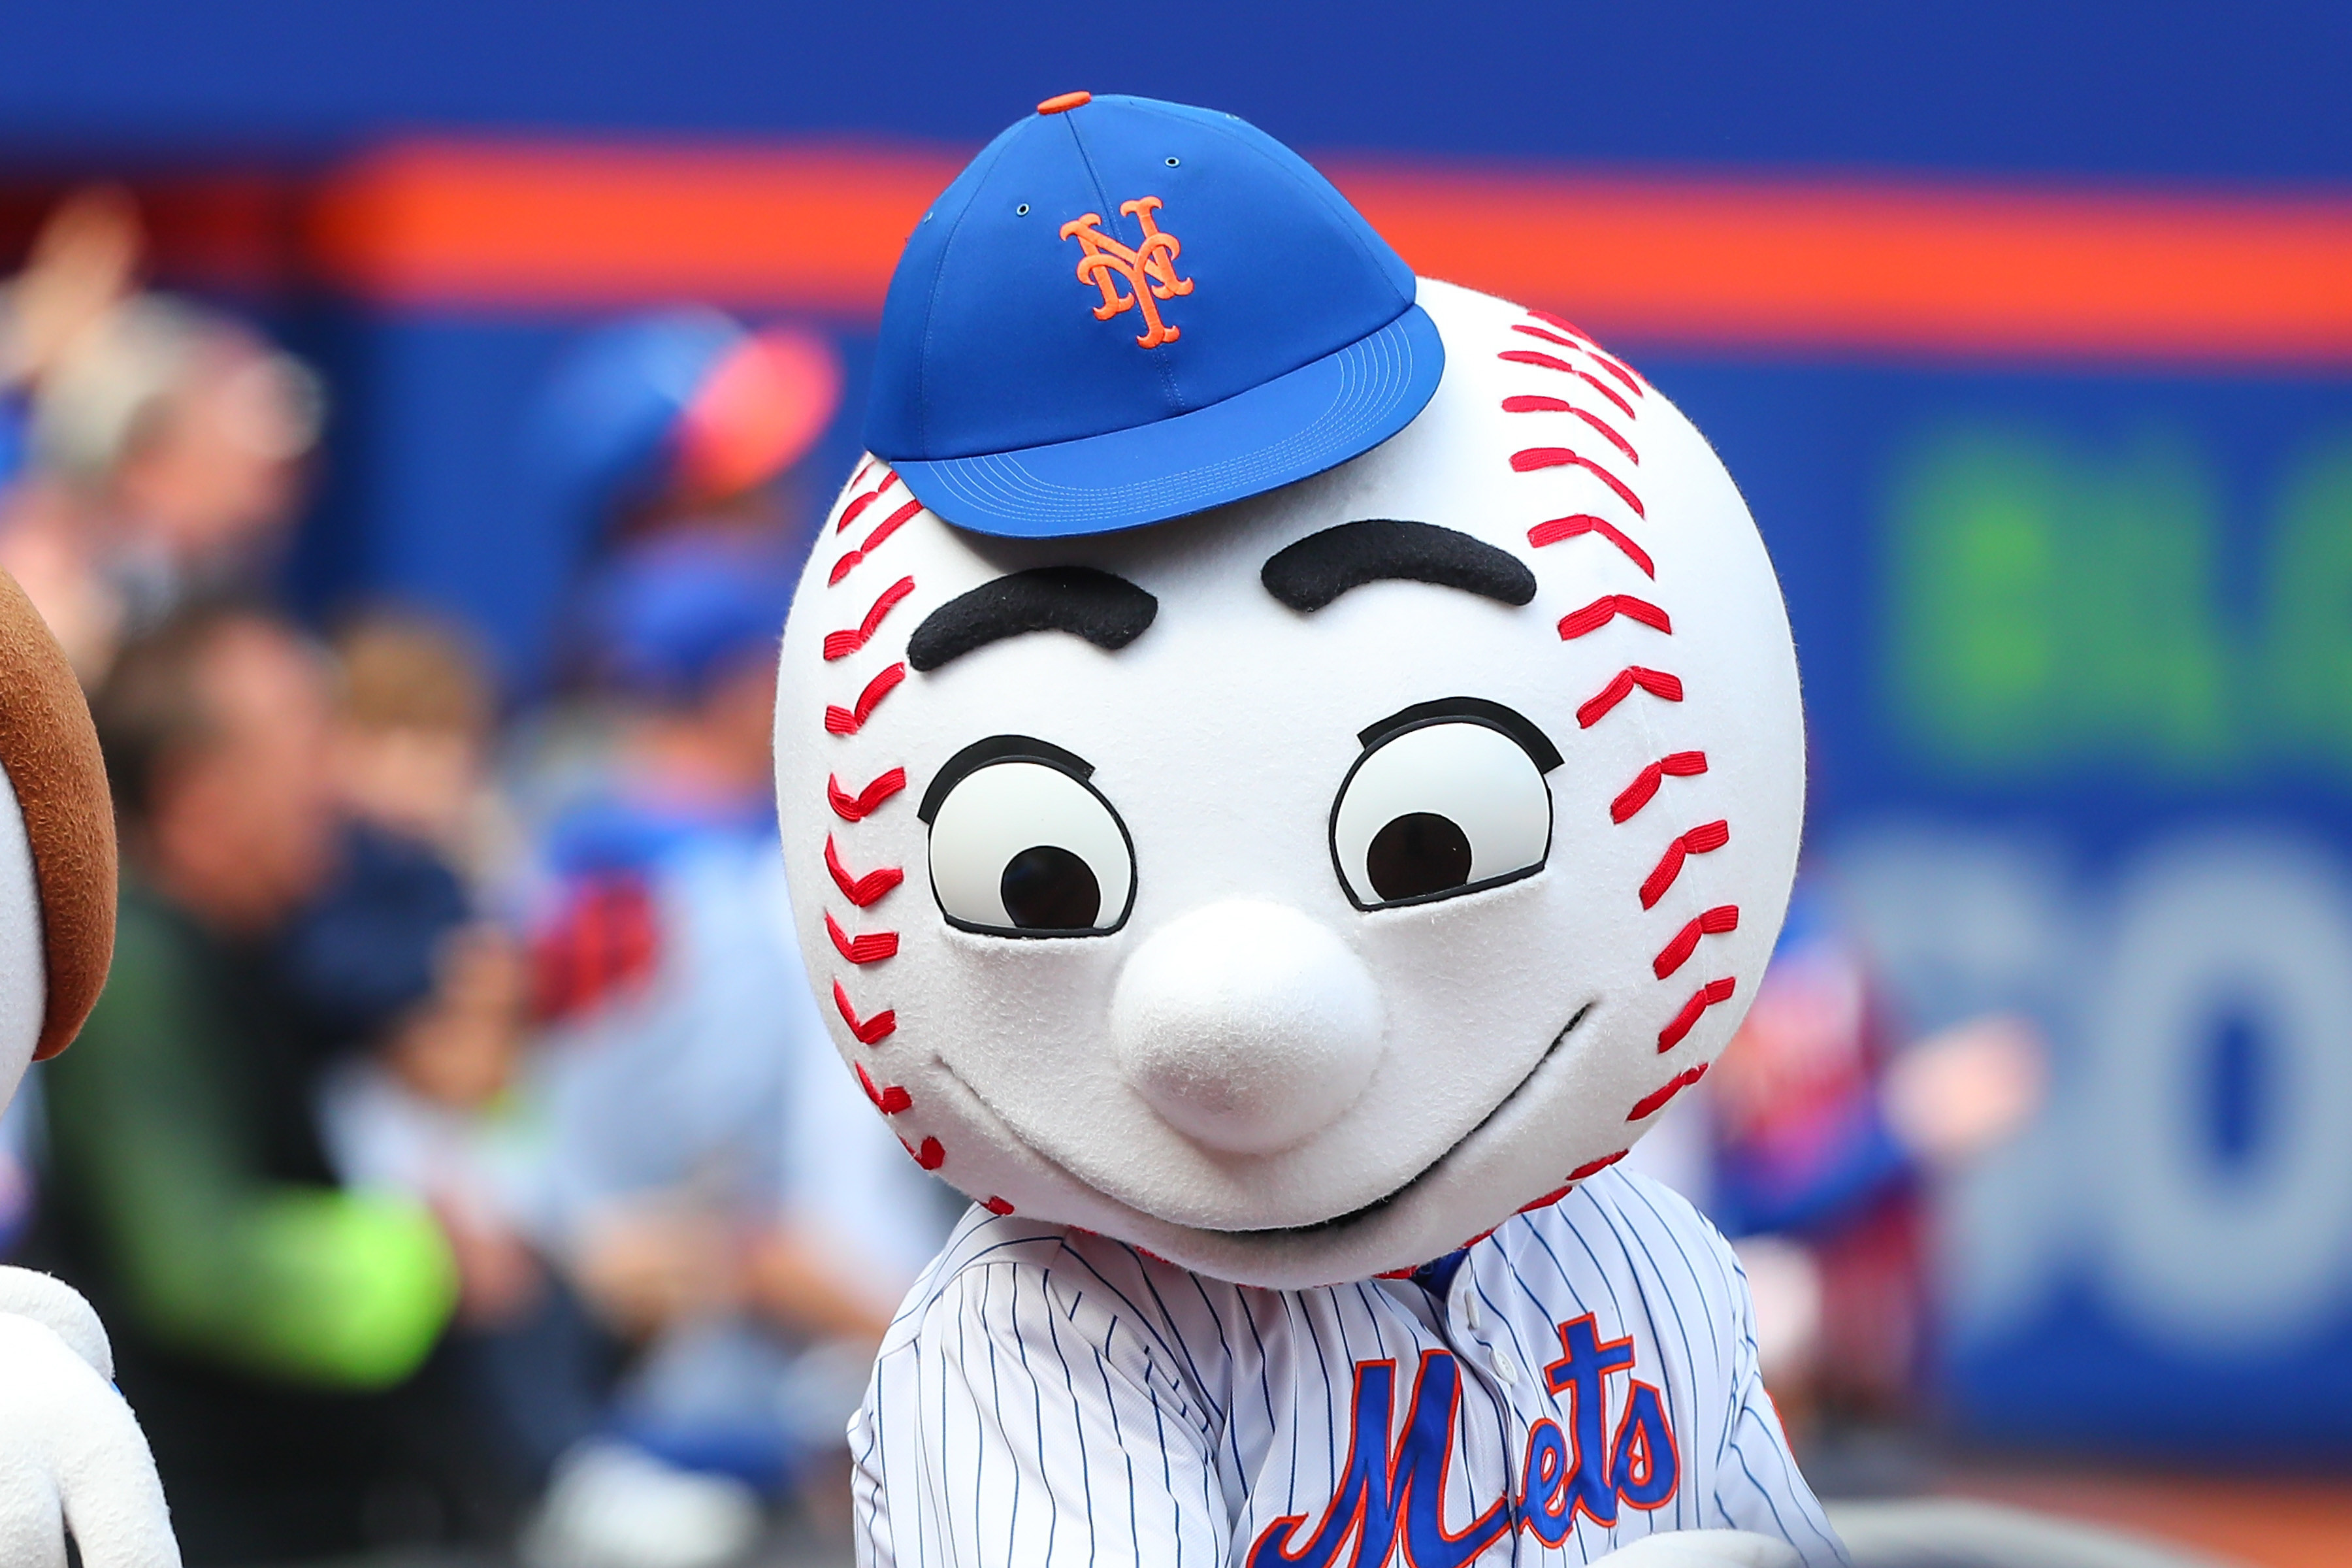 Mr. Met on Opening Day between the New York Mets and the Atlanta Braves on April 3, 2017, at Citi Field in Flushing, New York.